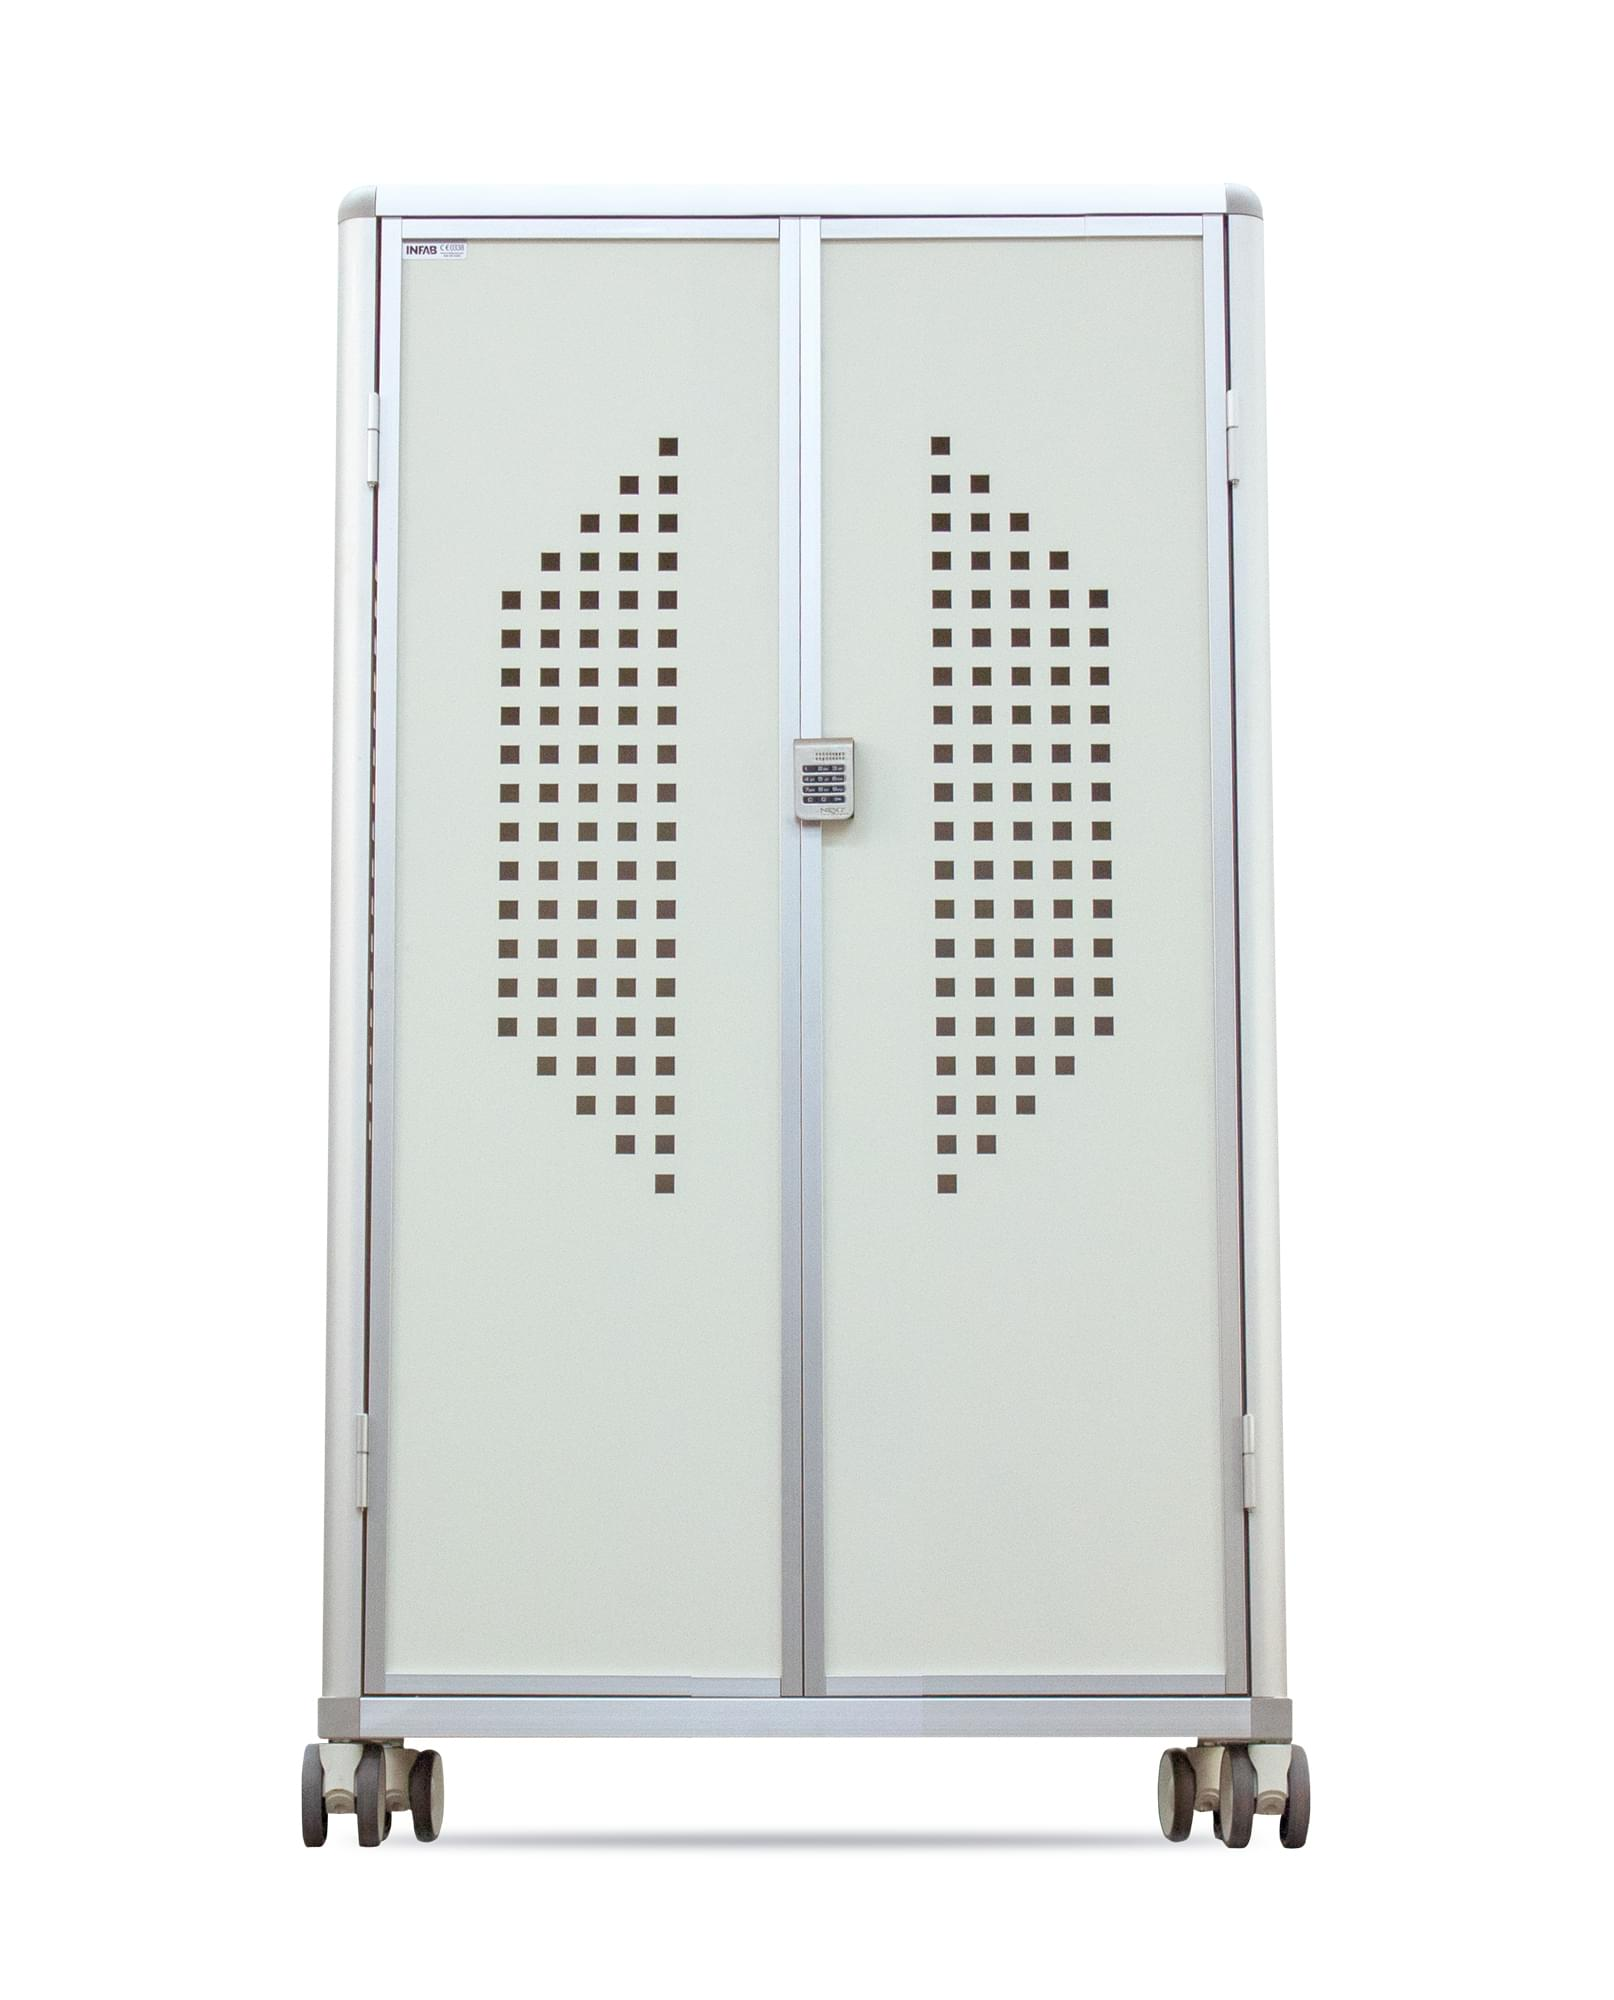 Revolution 10 Hanger Mobile Apron Locker